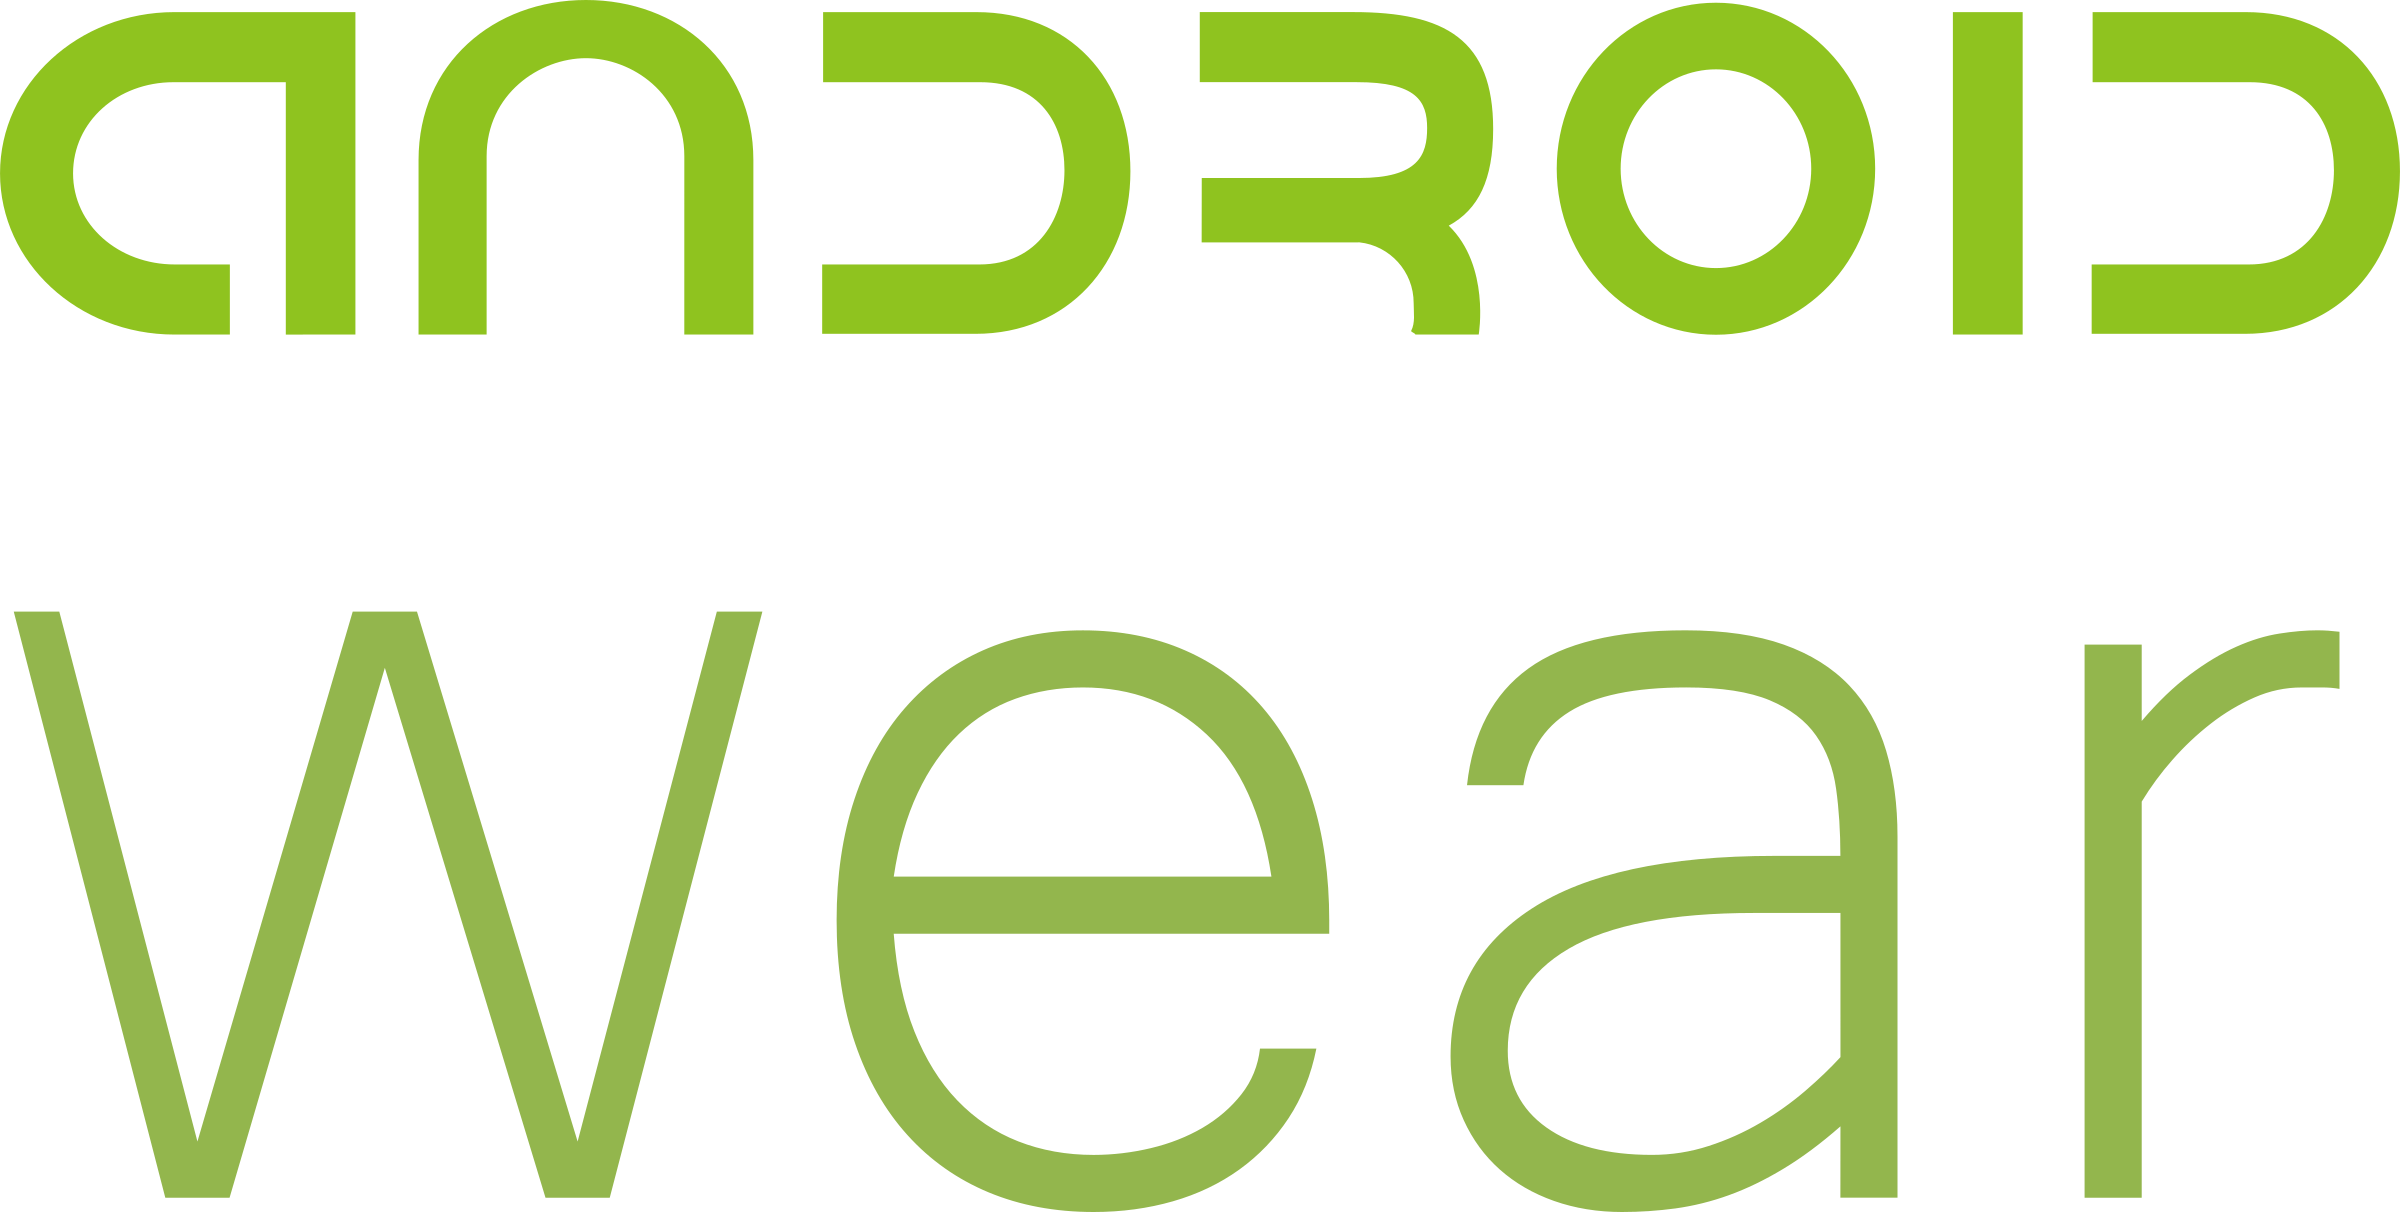 Android text png. Wear logo transparent svg